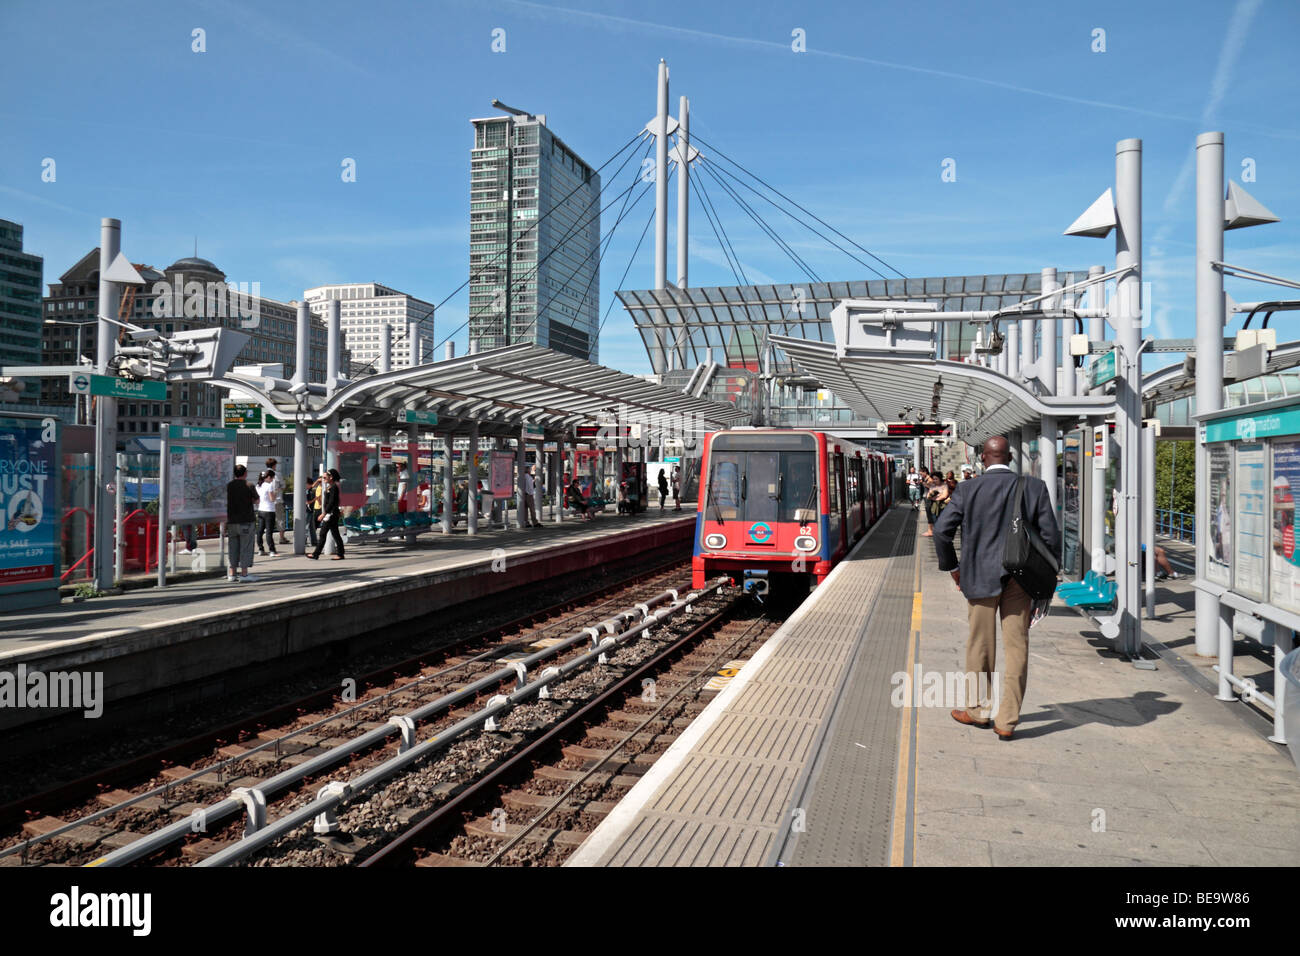 A Docklands Light Railway (DLR) train pulls into Poplar Station close to Canary Wharf, Isle of Dogs, London, UK. - Stock Image